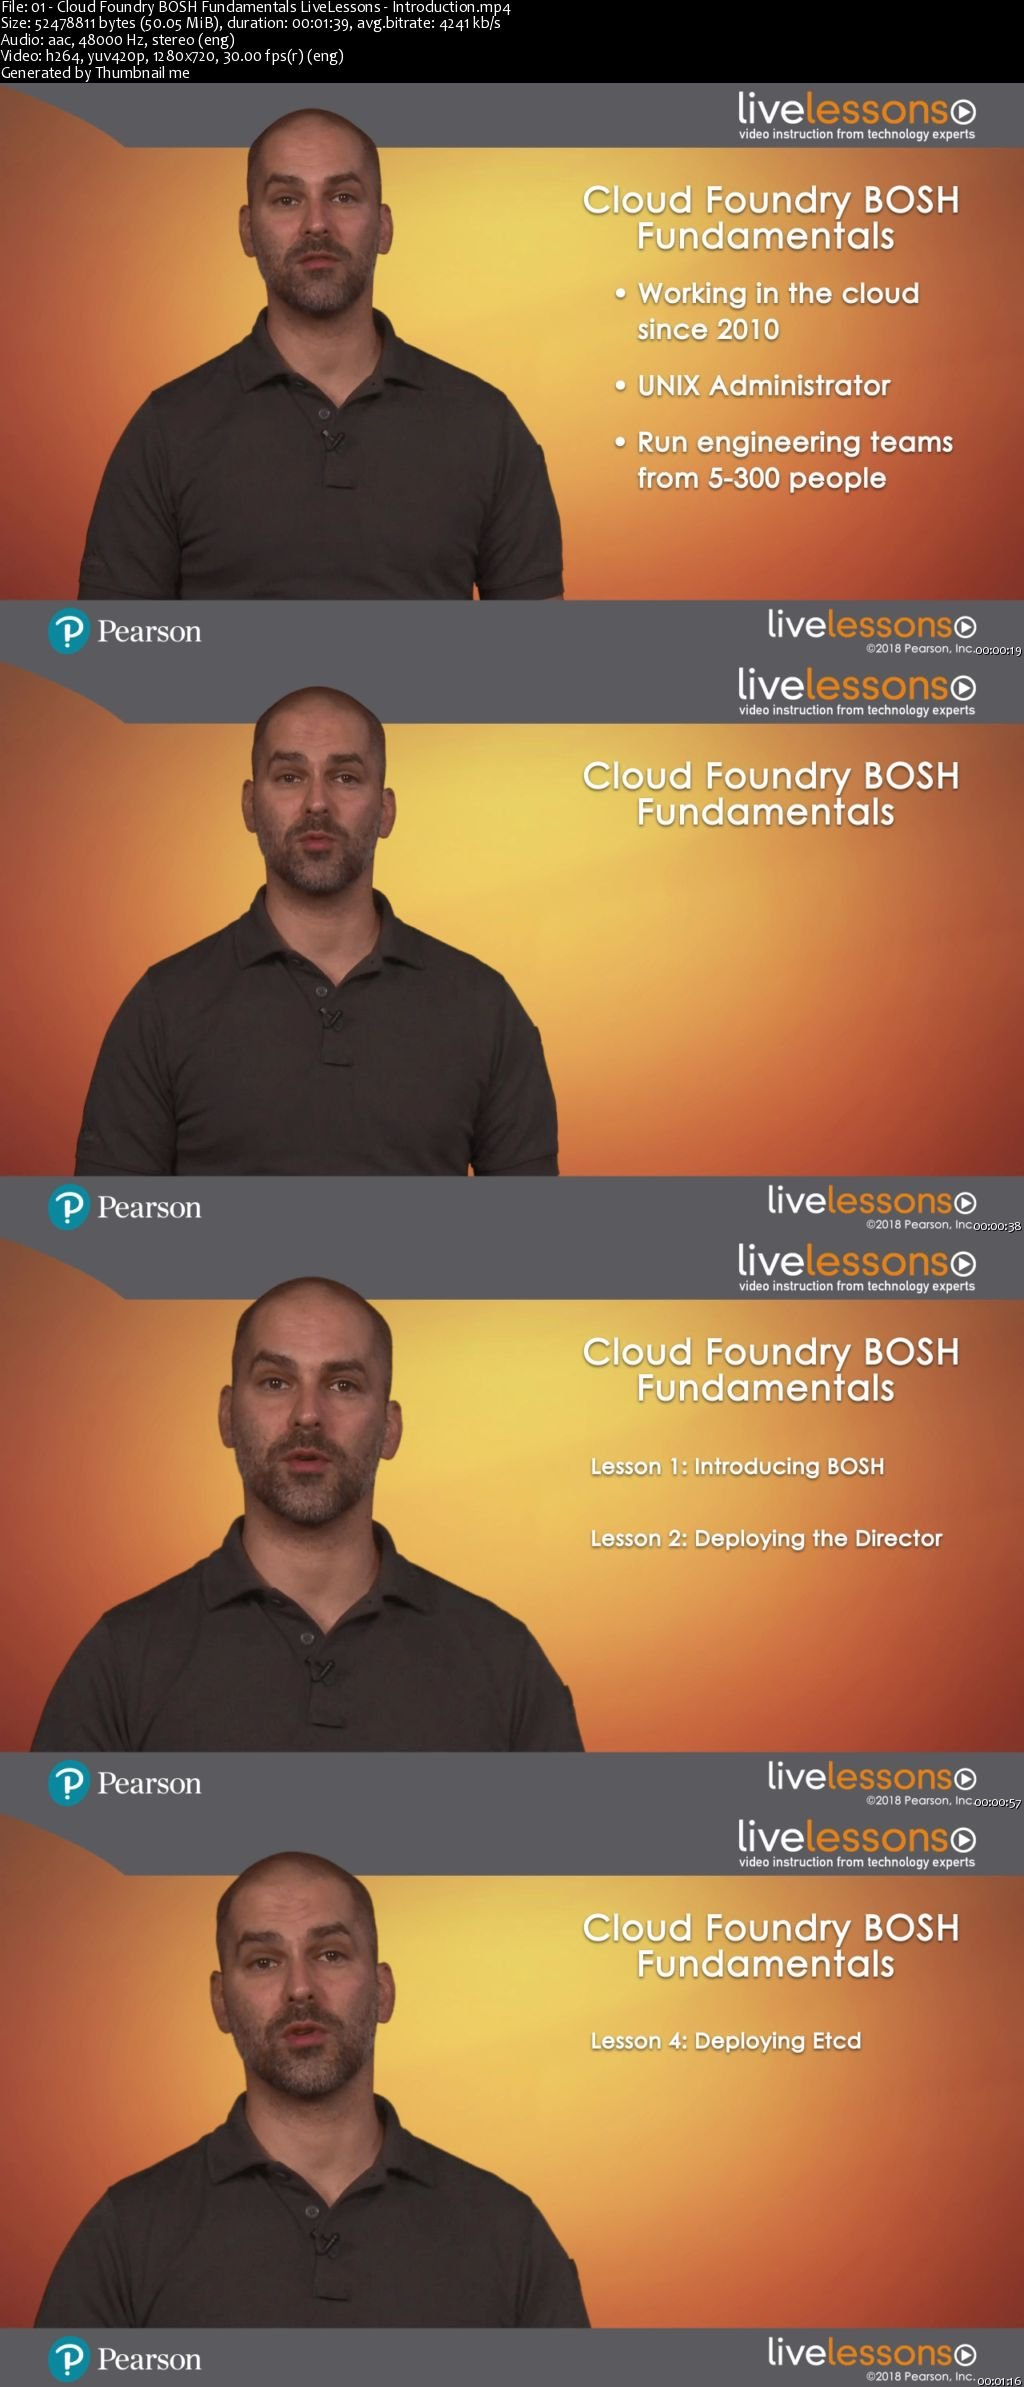 Cloud Foundry BOSH Fundamentals